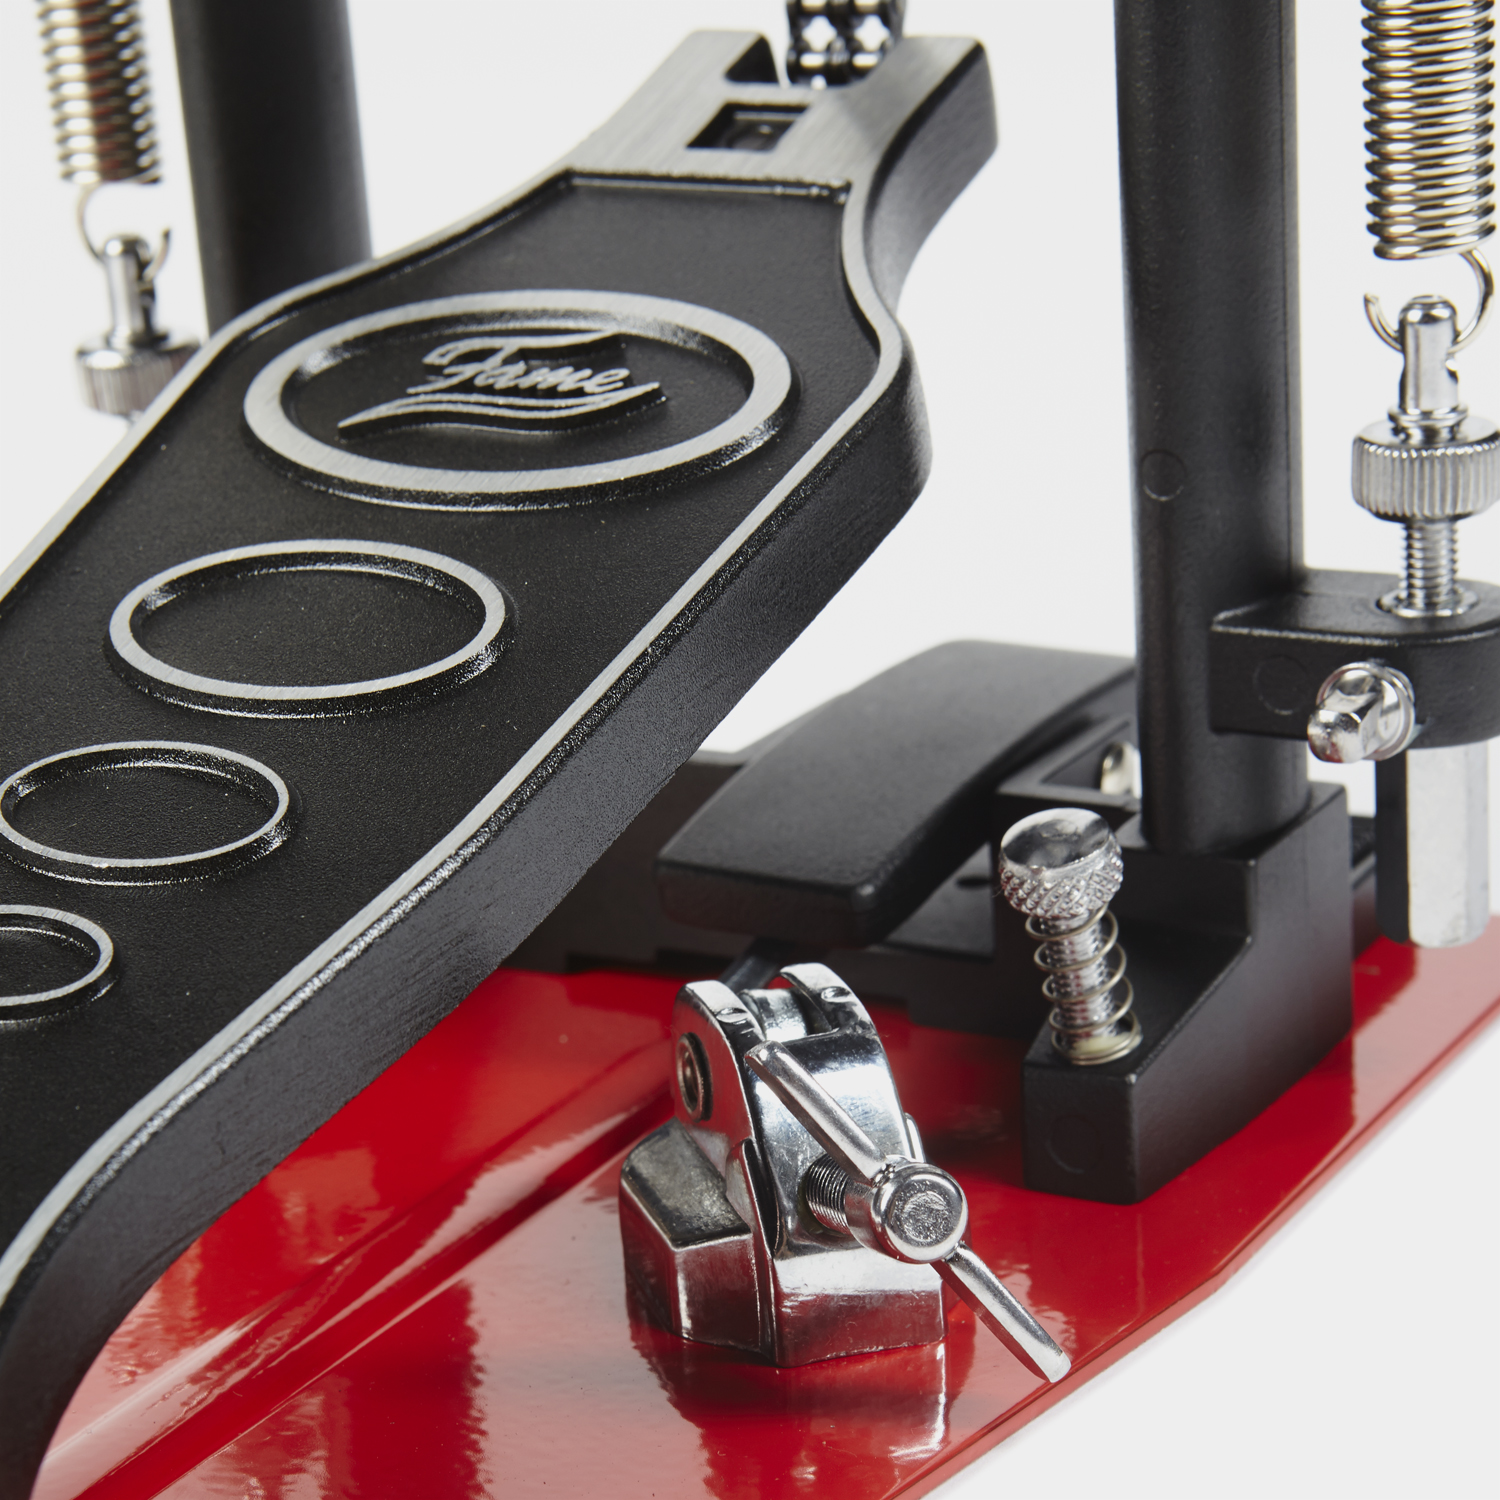 Fame Kick Pedal FP9001 Hoop Clamp